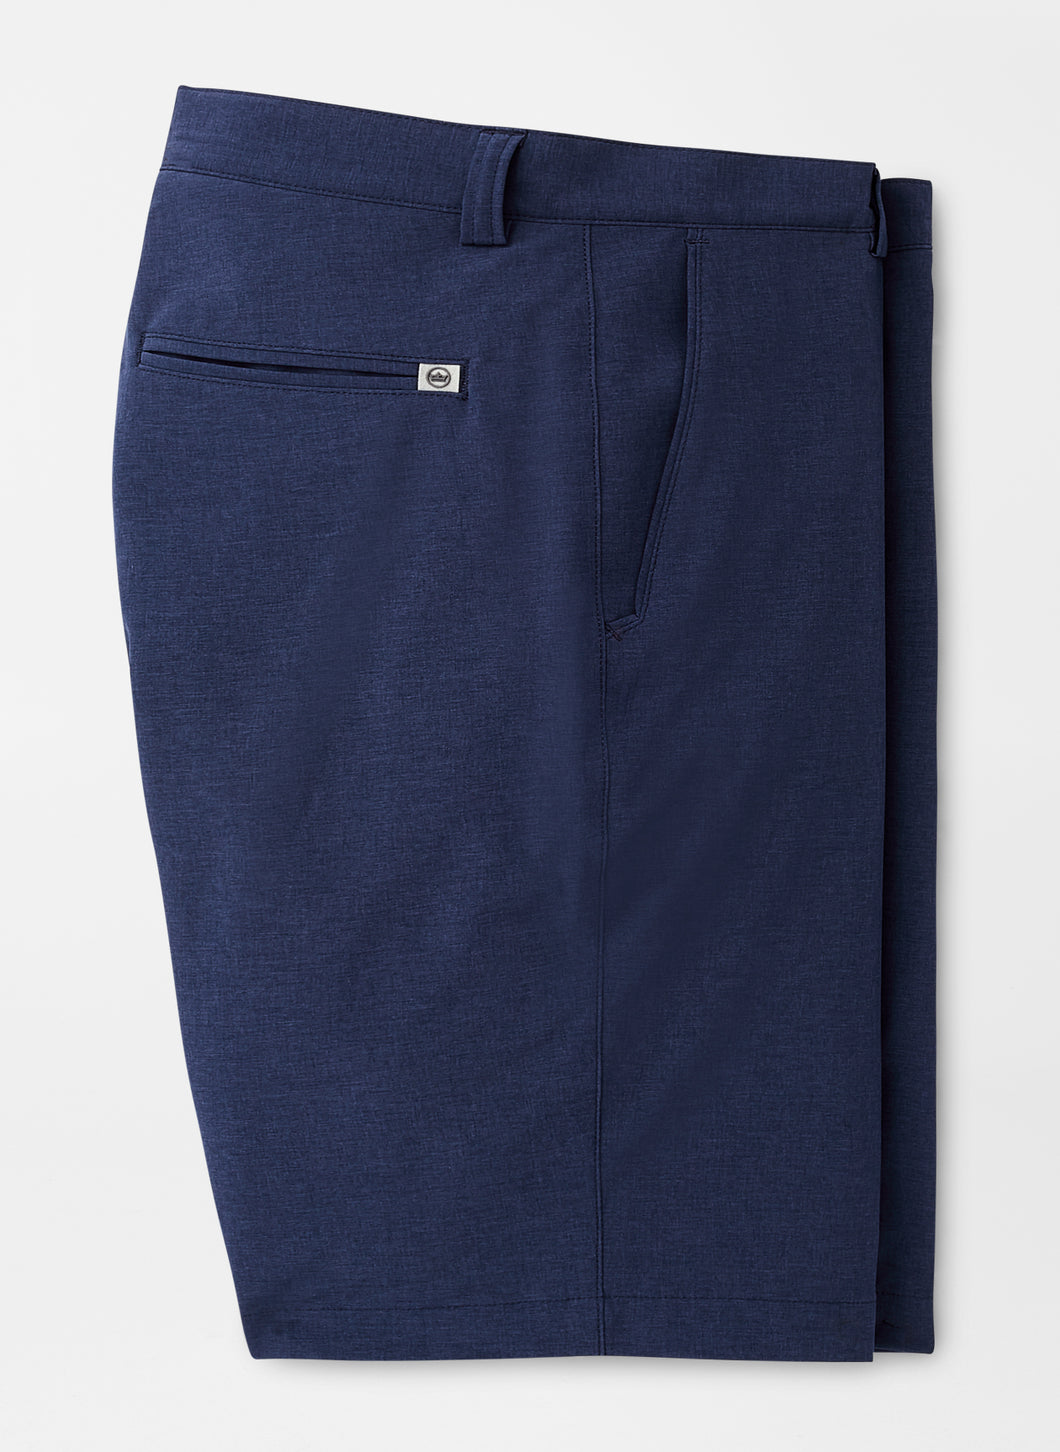 Peter Millar Shackleford Performance Short: Navy